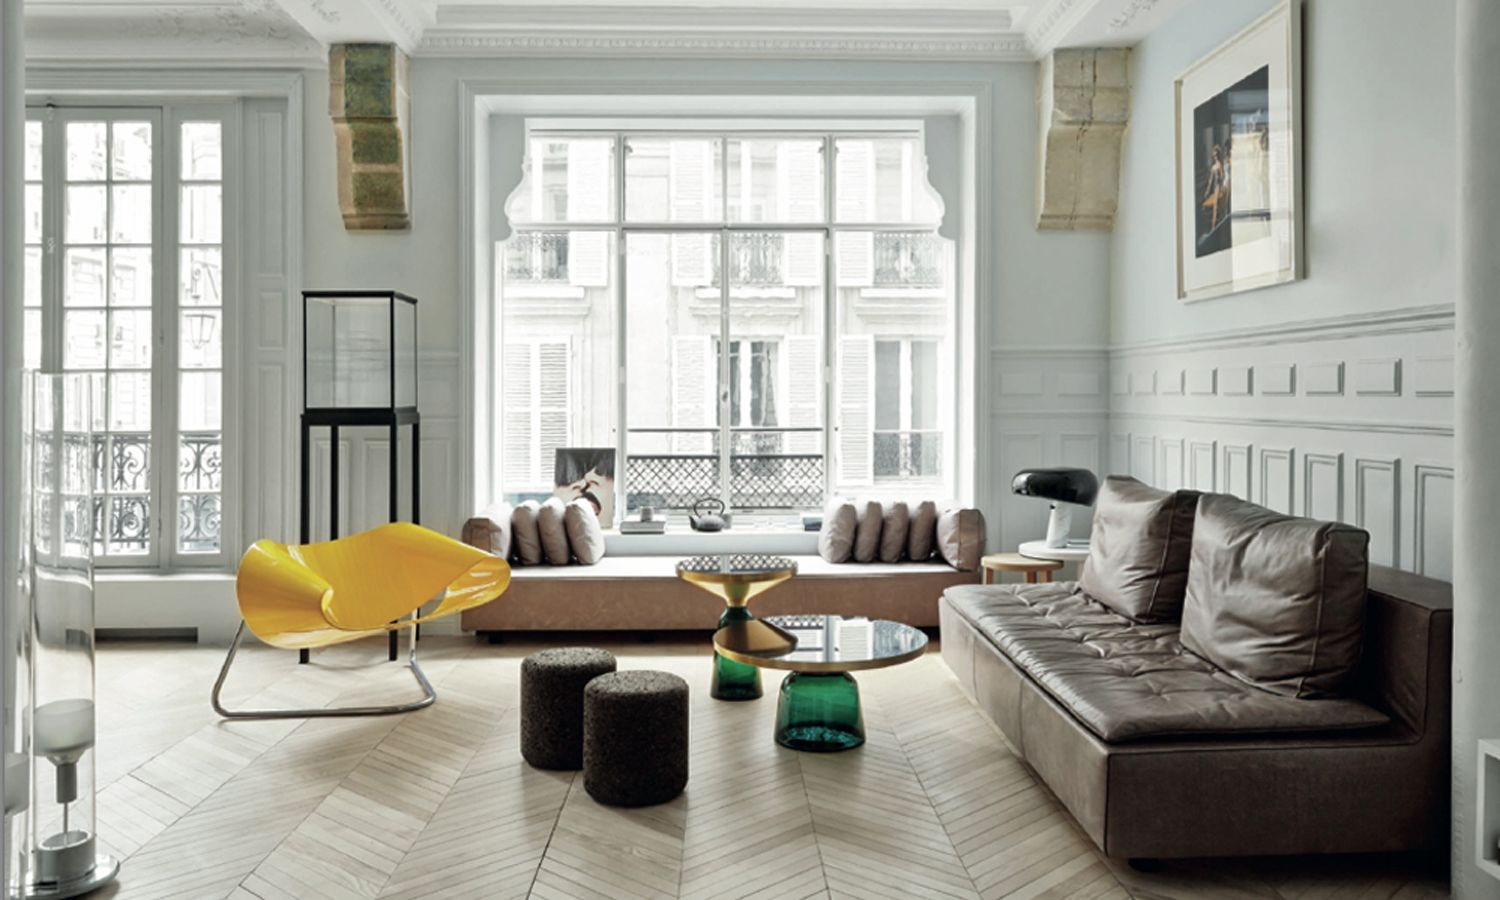 5 Lessons The French Have Taught Us About Home Decor